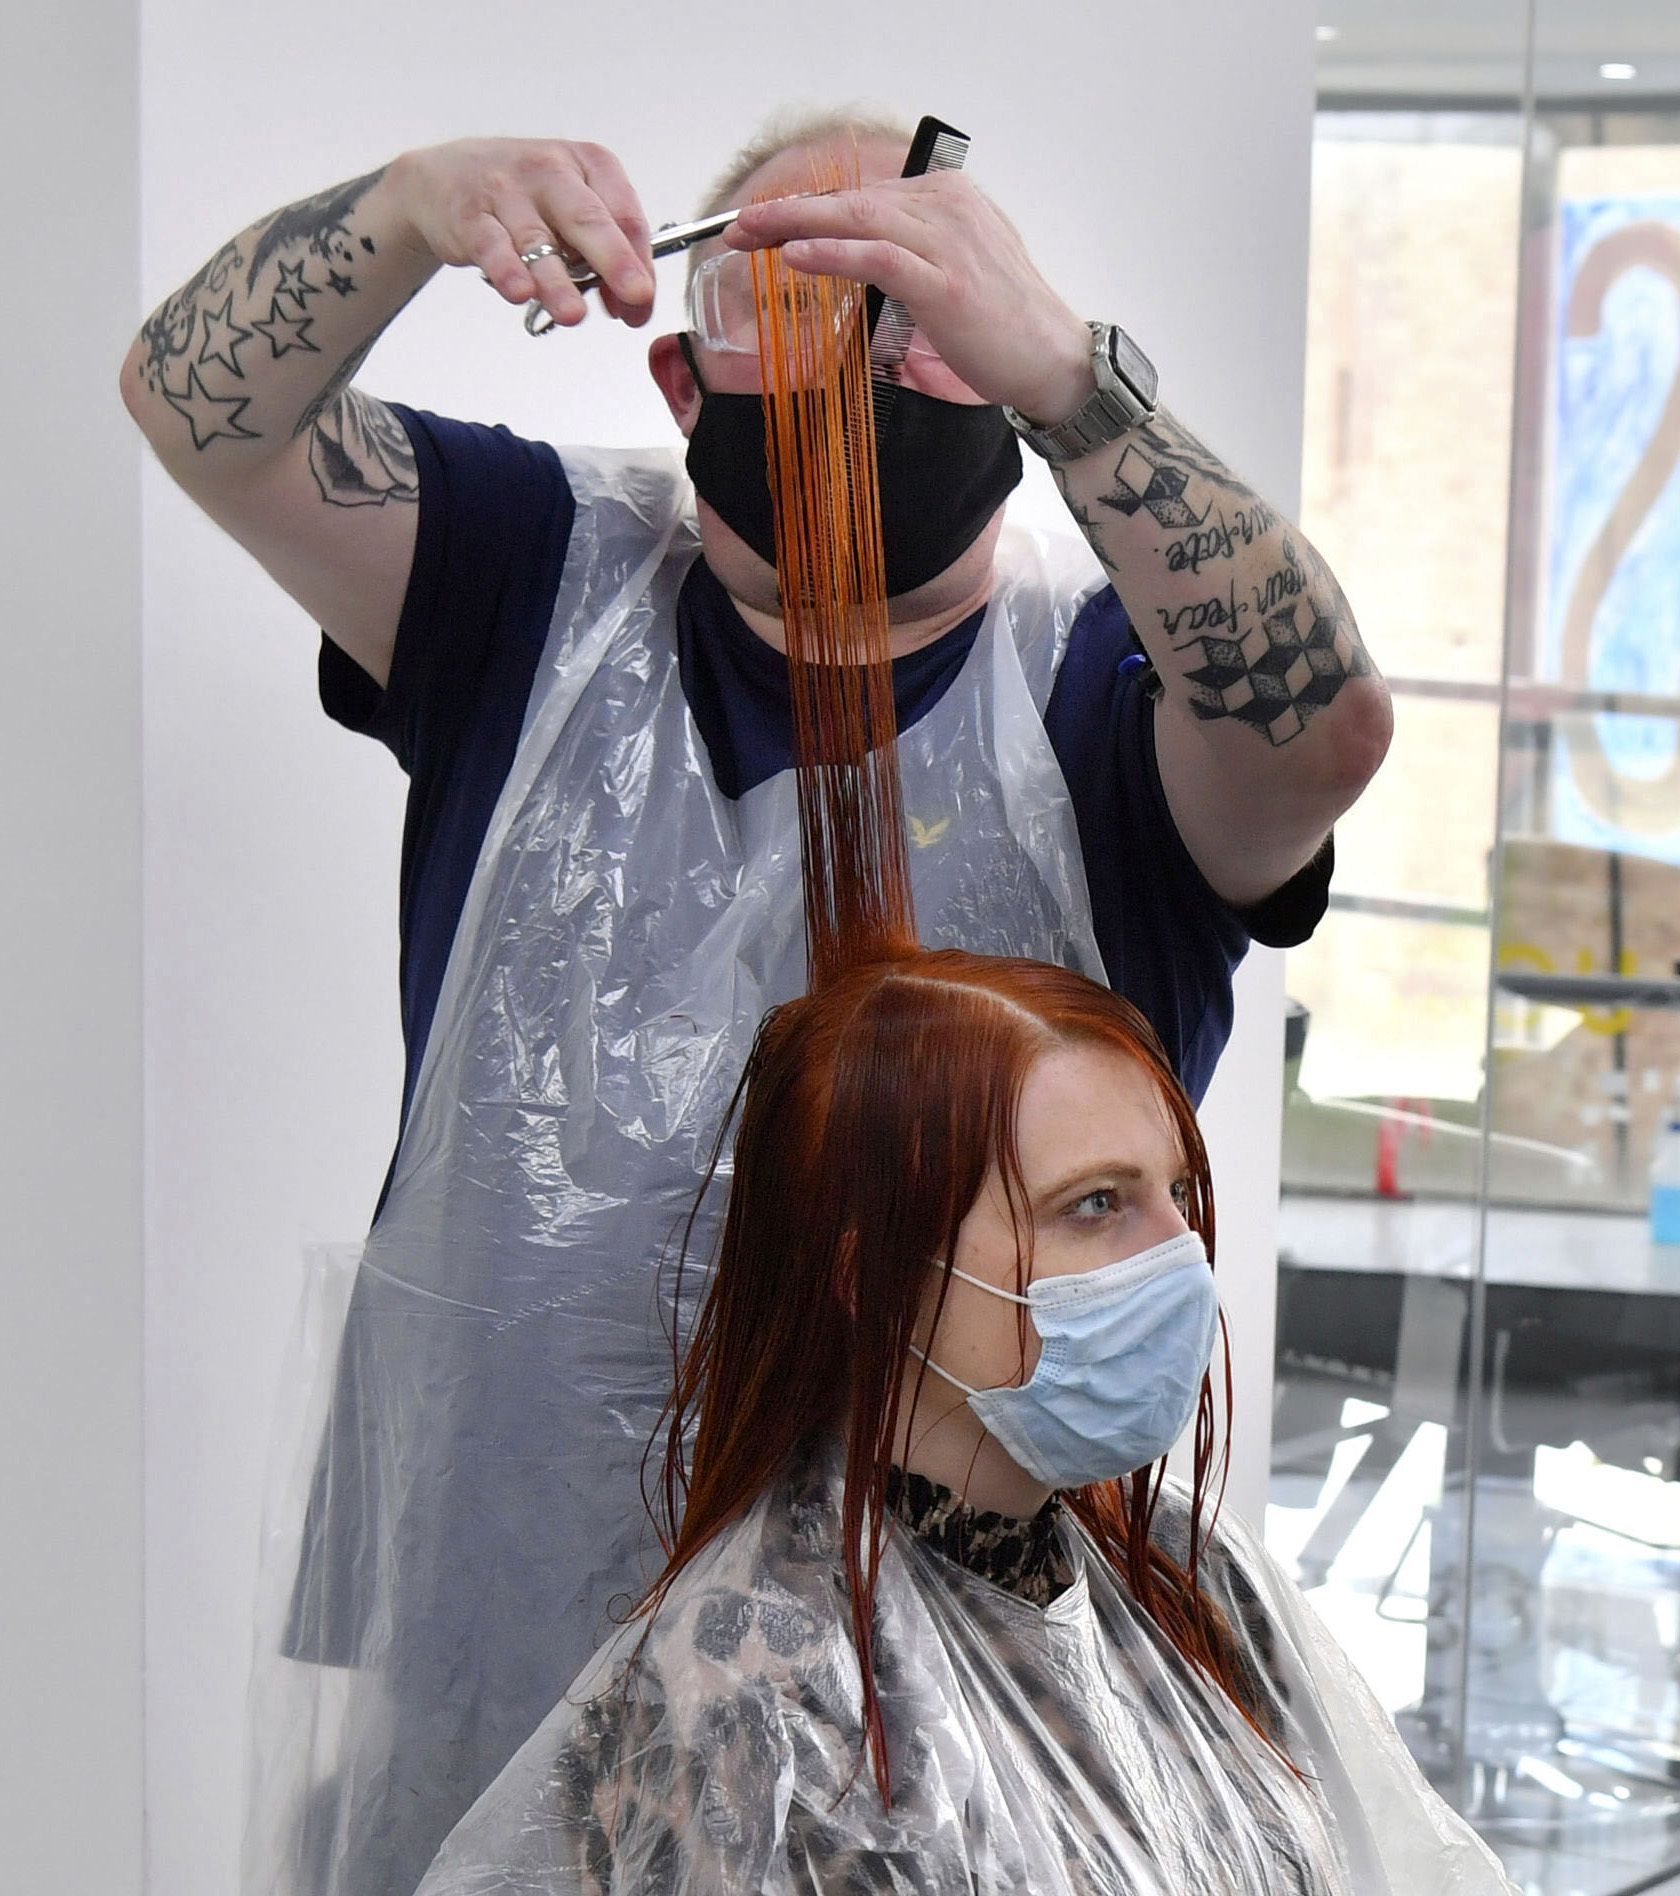 <p>A stylist cuts the hair of a client at the Lazarou salon in Cardiff, Wales, Monday March 15, 2021. Hairdressers and barbers in Wales can reopen from Monday, as coronavirus restrictions are eased, marking the first lifting of rules for close contact services. (Ben Birchall/PA via AP)</p>